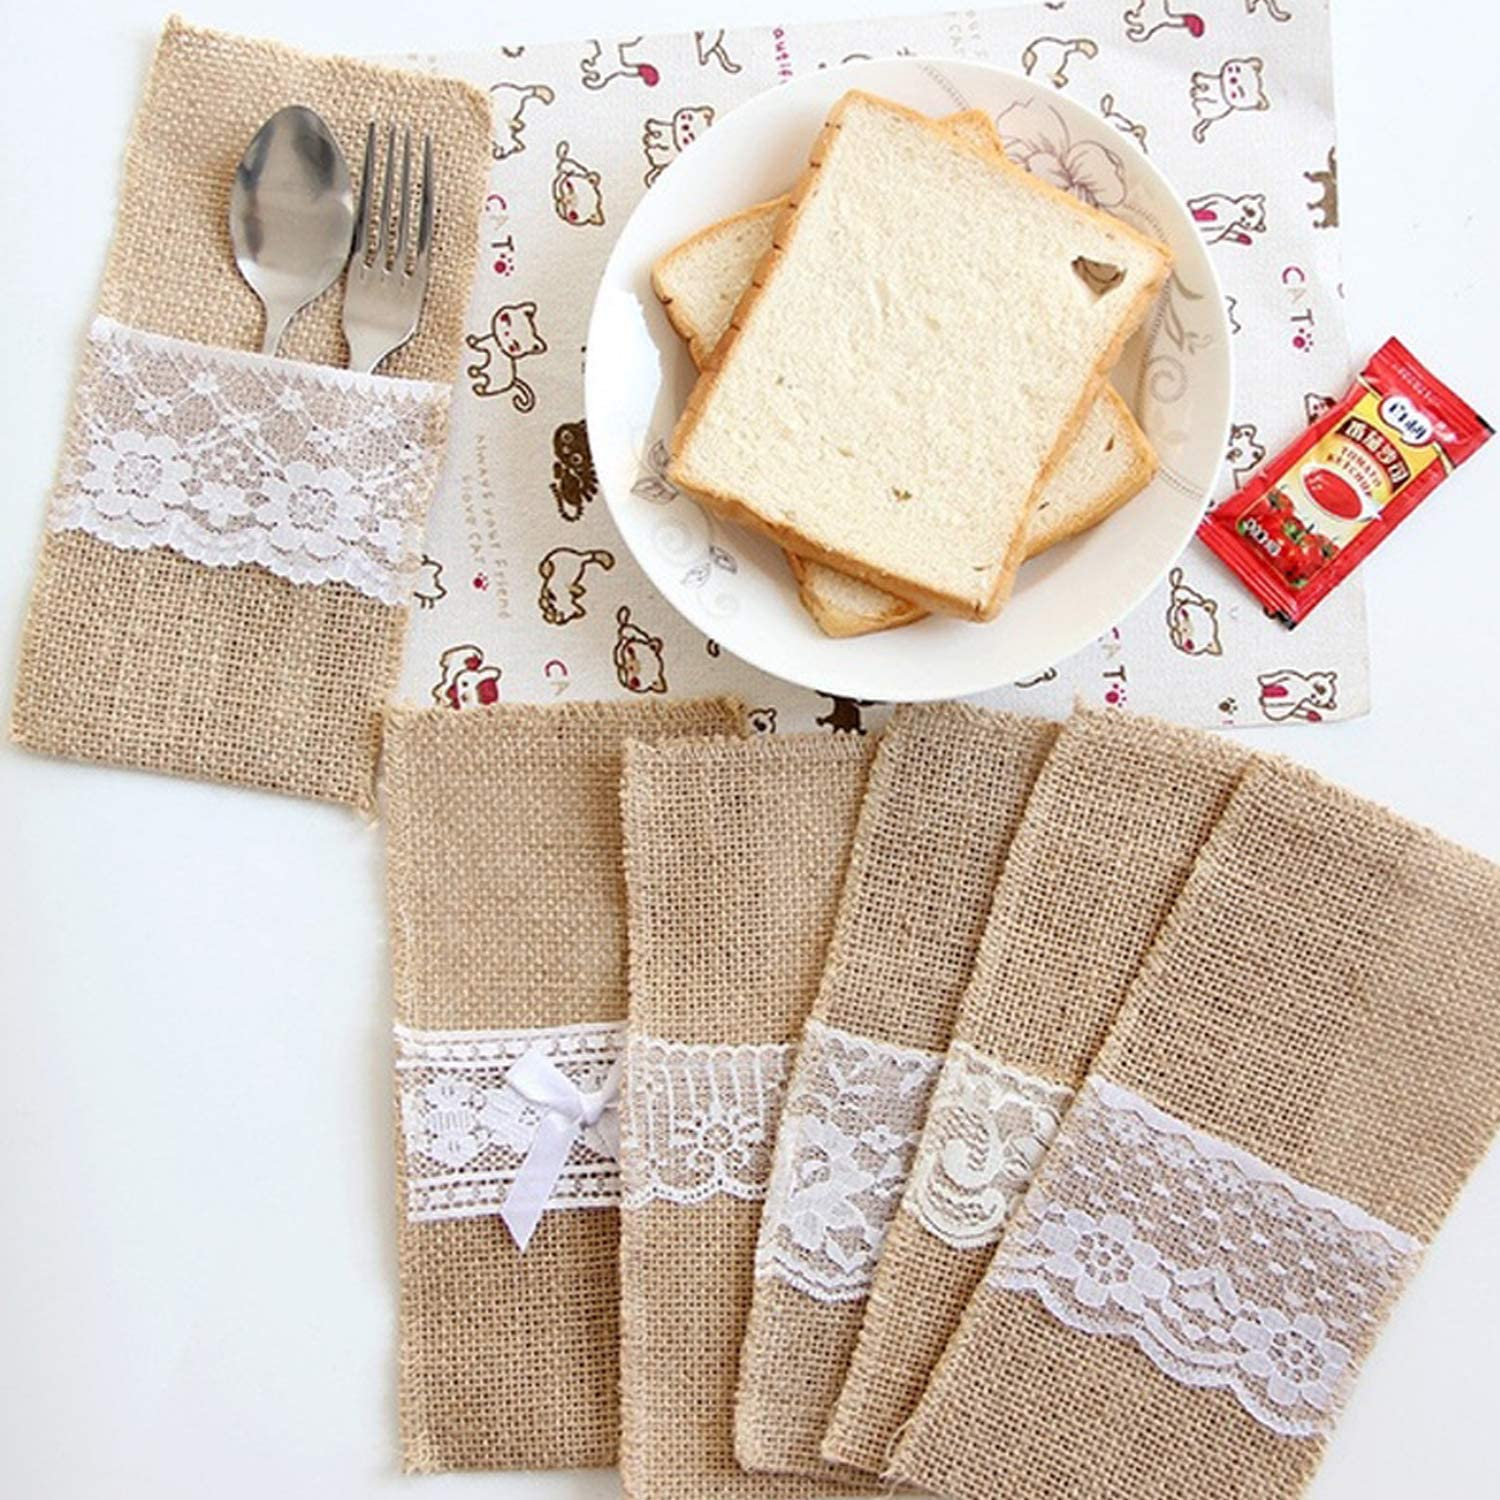 SIMIN 20 PCS Jute Lace Cutlery Holder,Natural Burlap Utensil Holders Knifes Forks Bag for Birthday Wedding Party Decorations